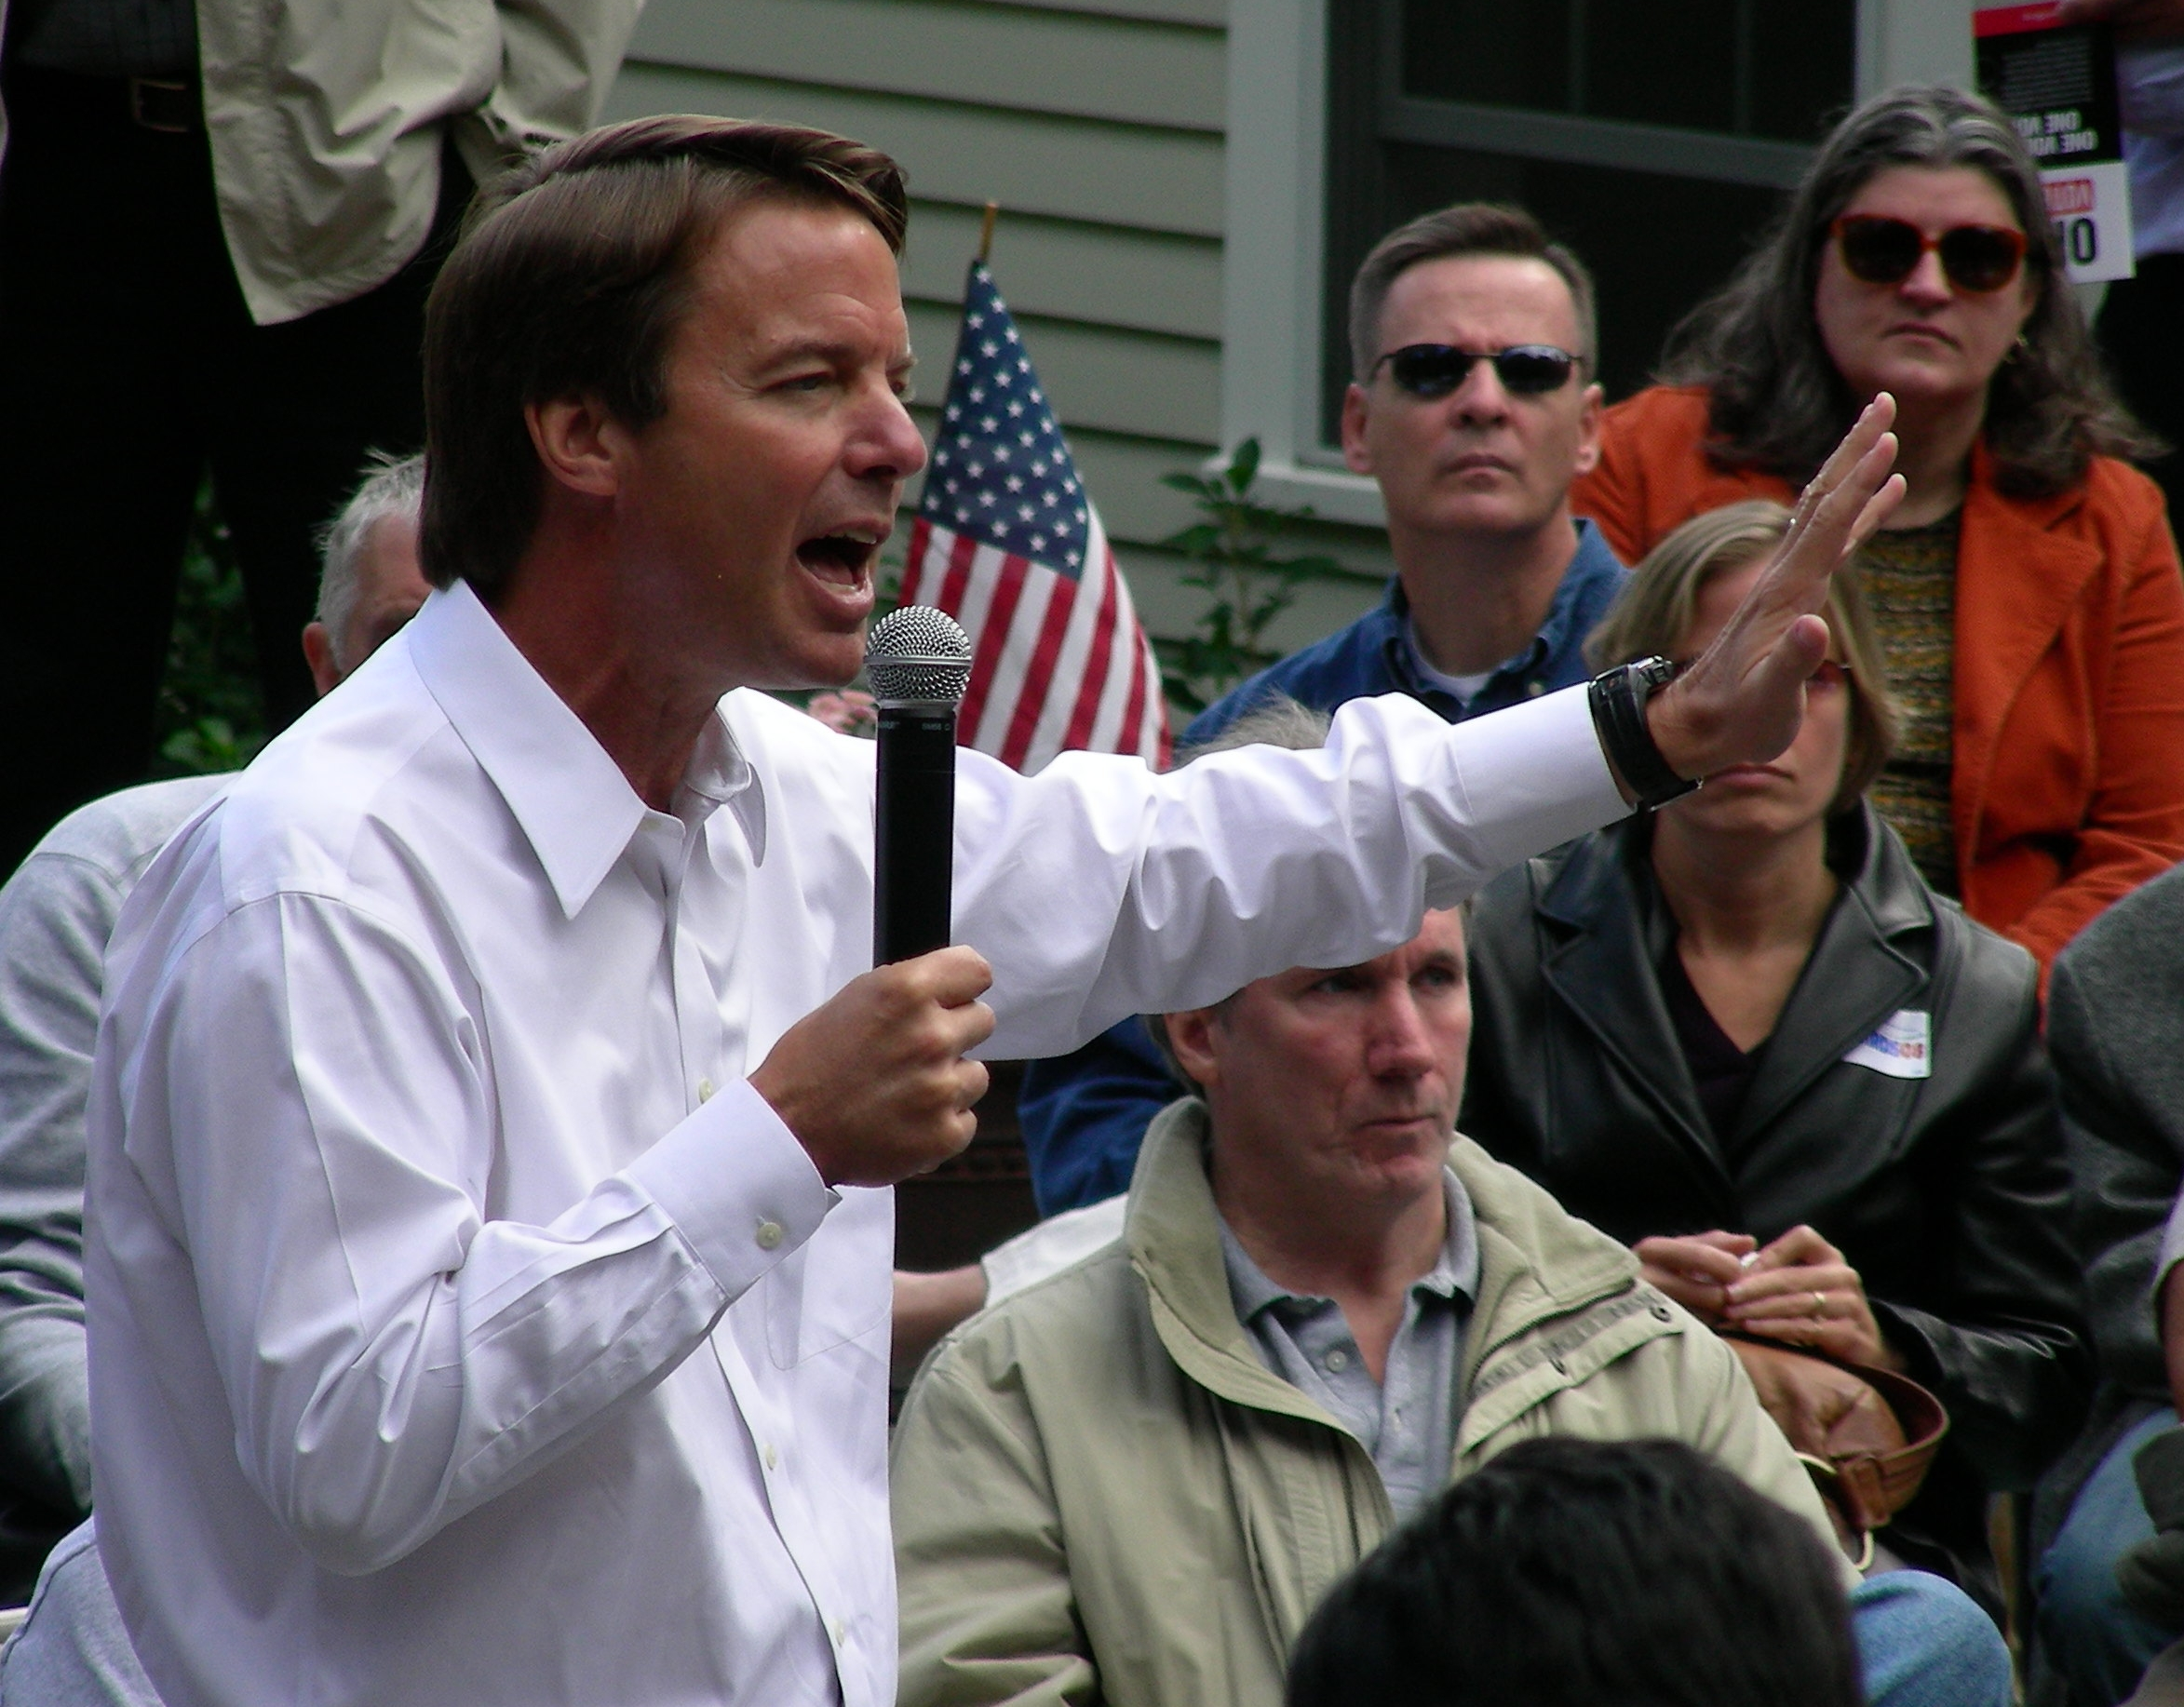 John Edwards greets a crowd in New Hampshire.